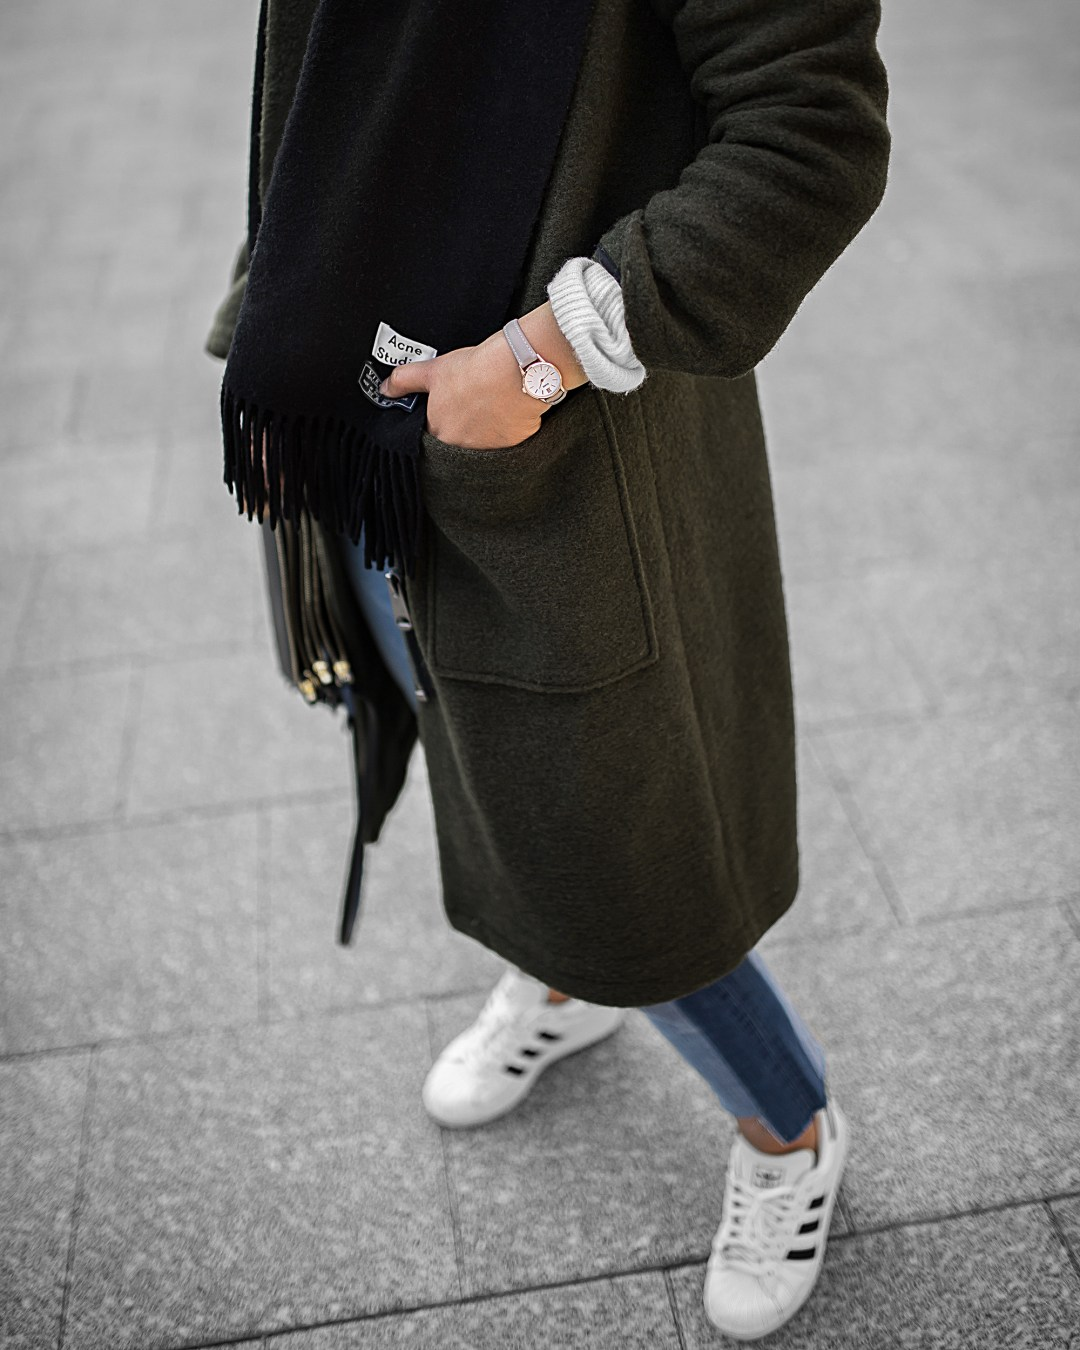 acne-scarf-khaki-coat-stepped-hem-jeans-outfit-inspiration-6-copy